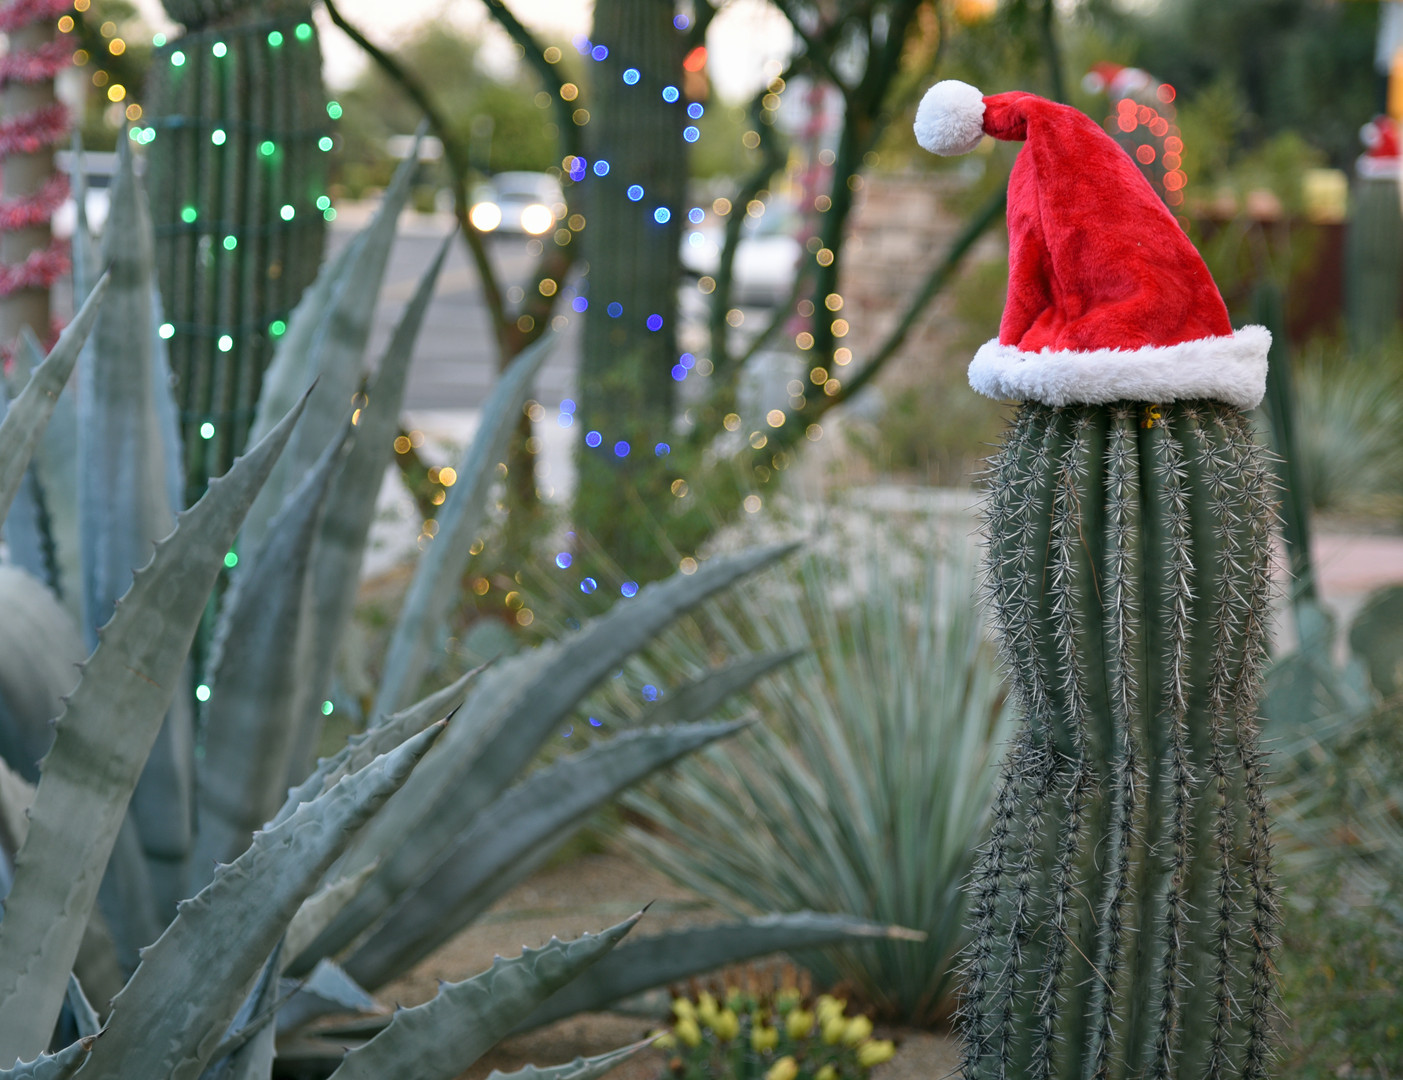 Saguaro cactus with santa hat during day